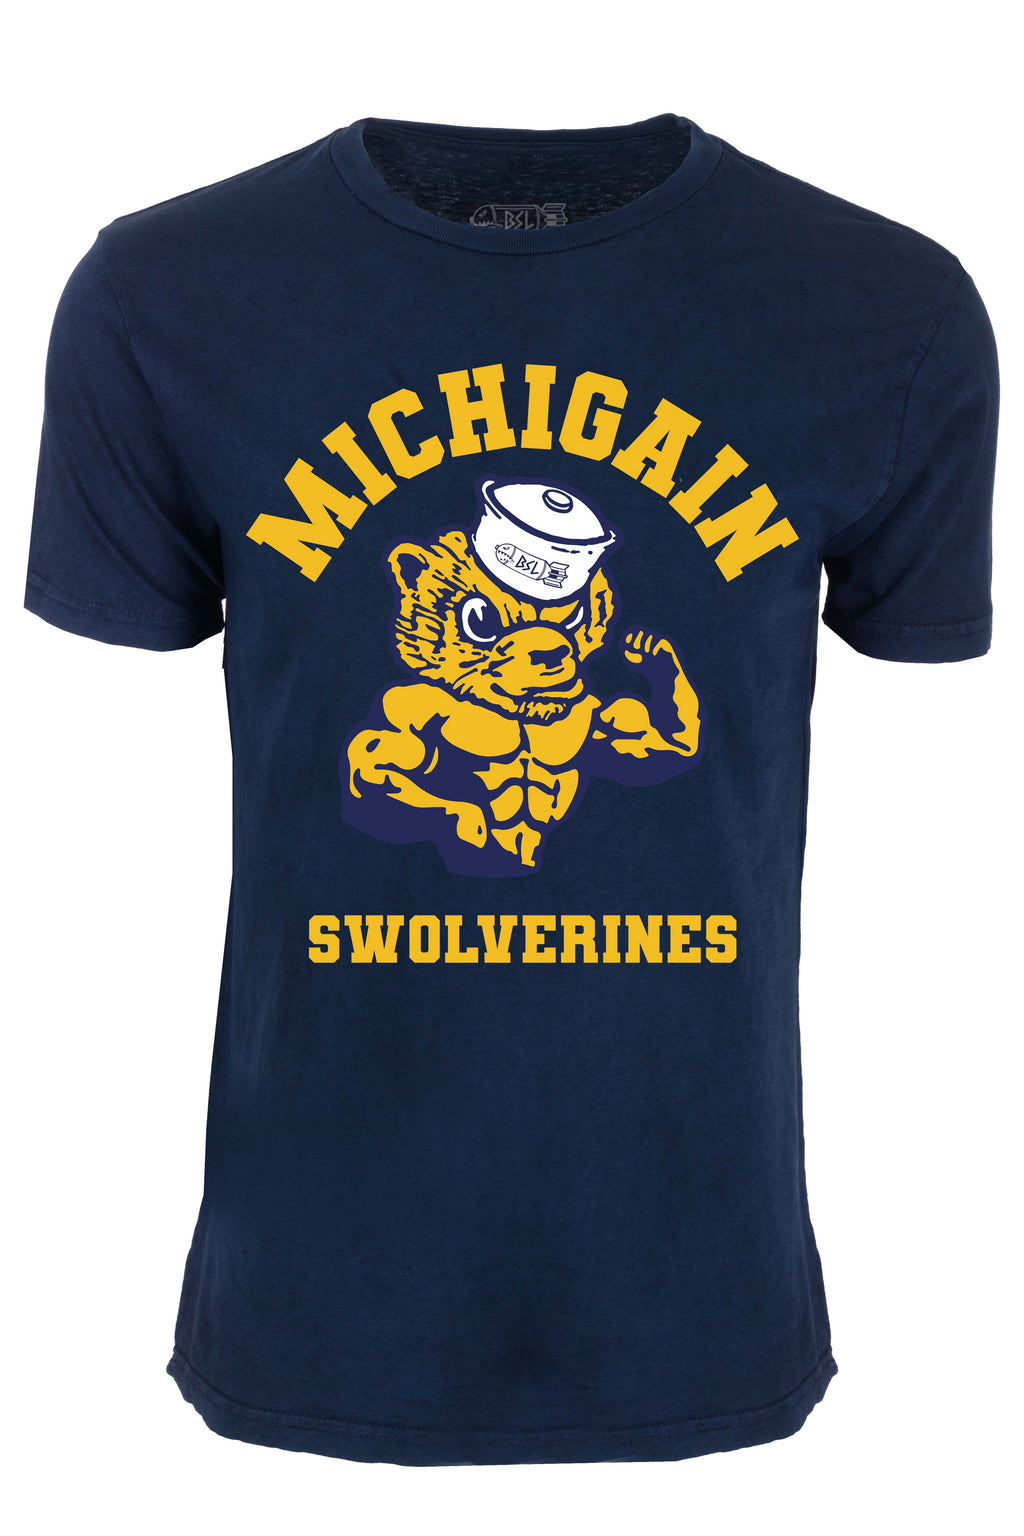 Michigain Swolverines Tee - Vintage Blue